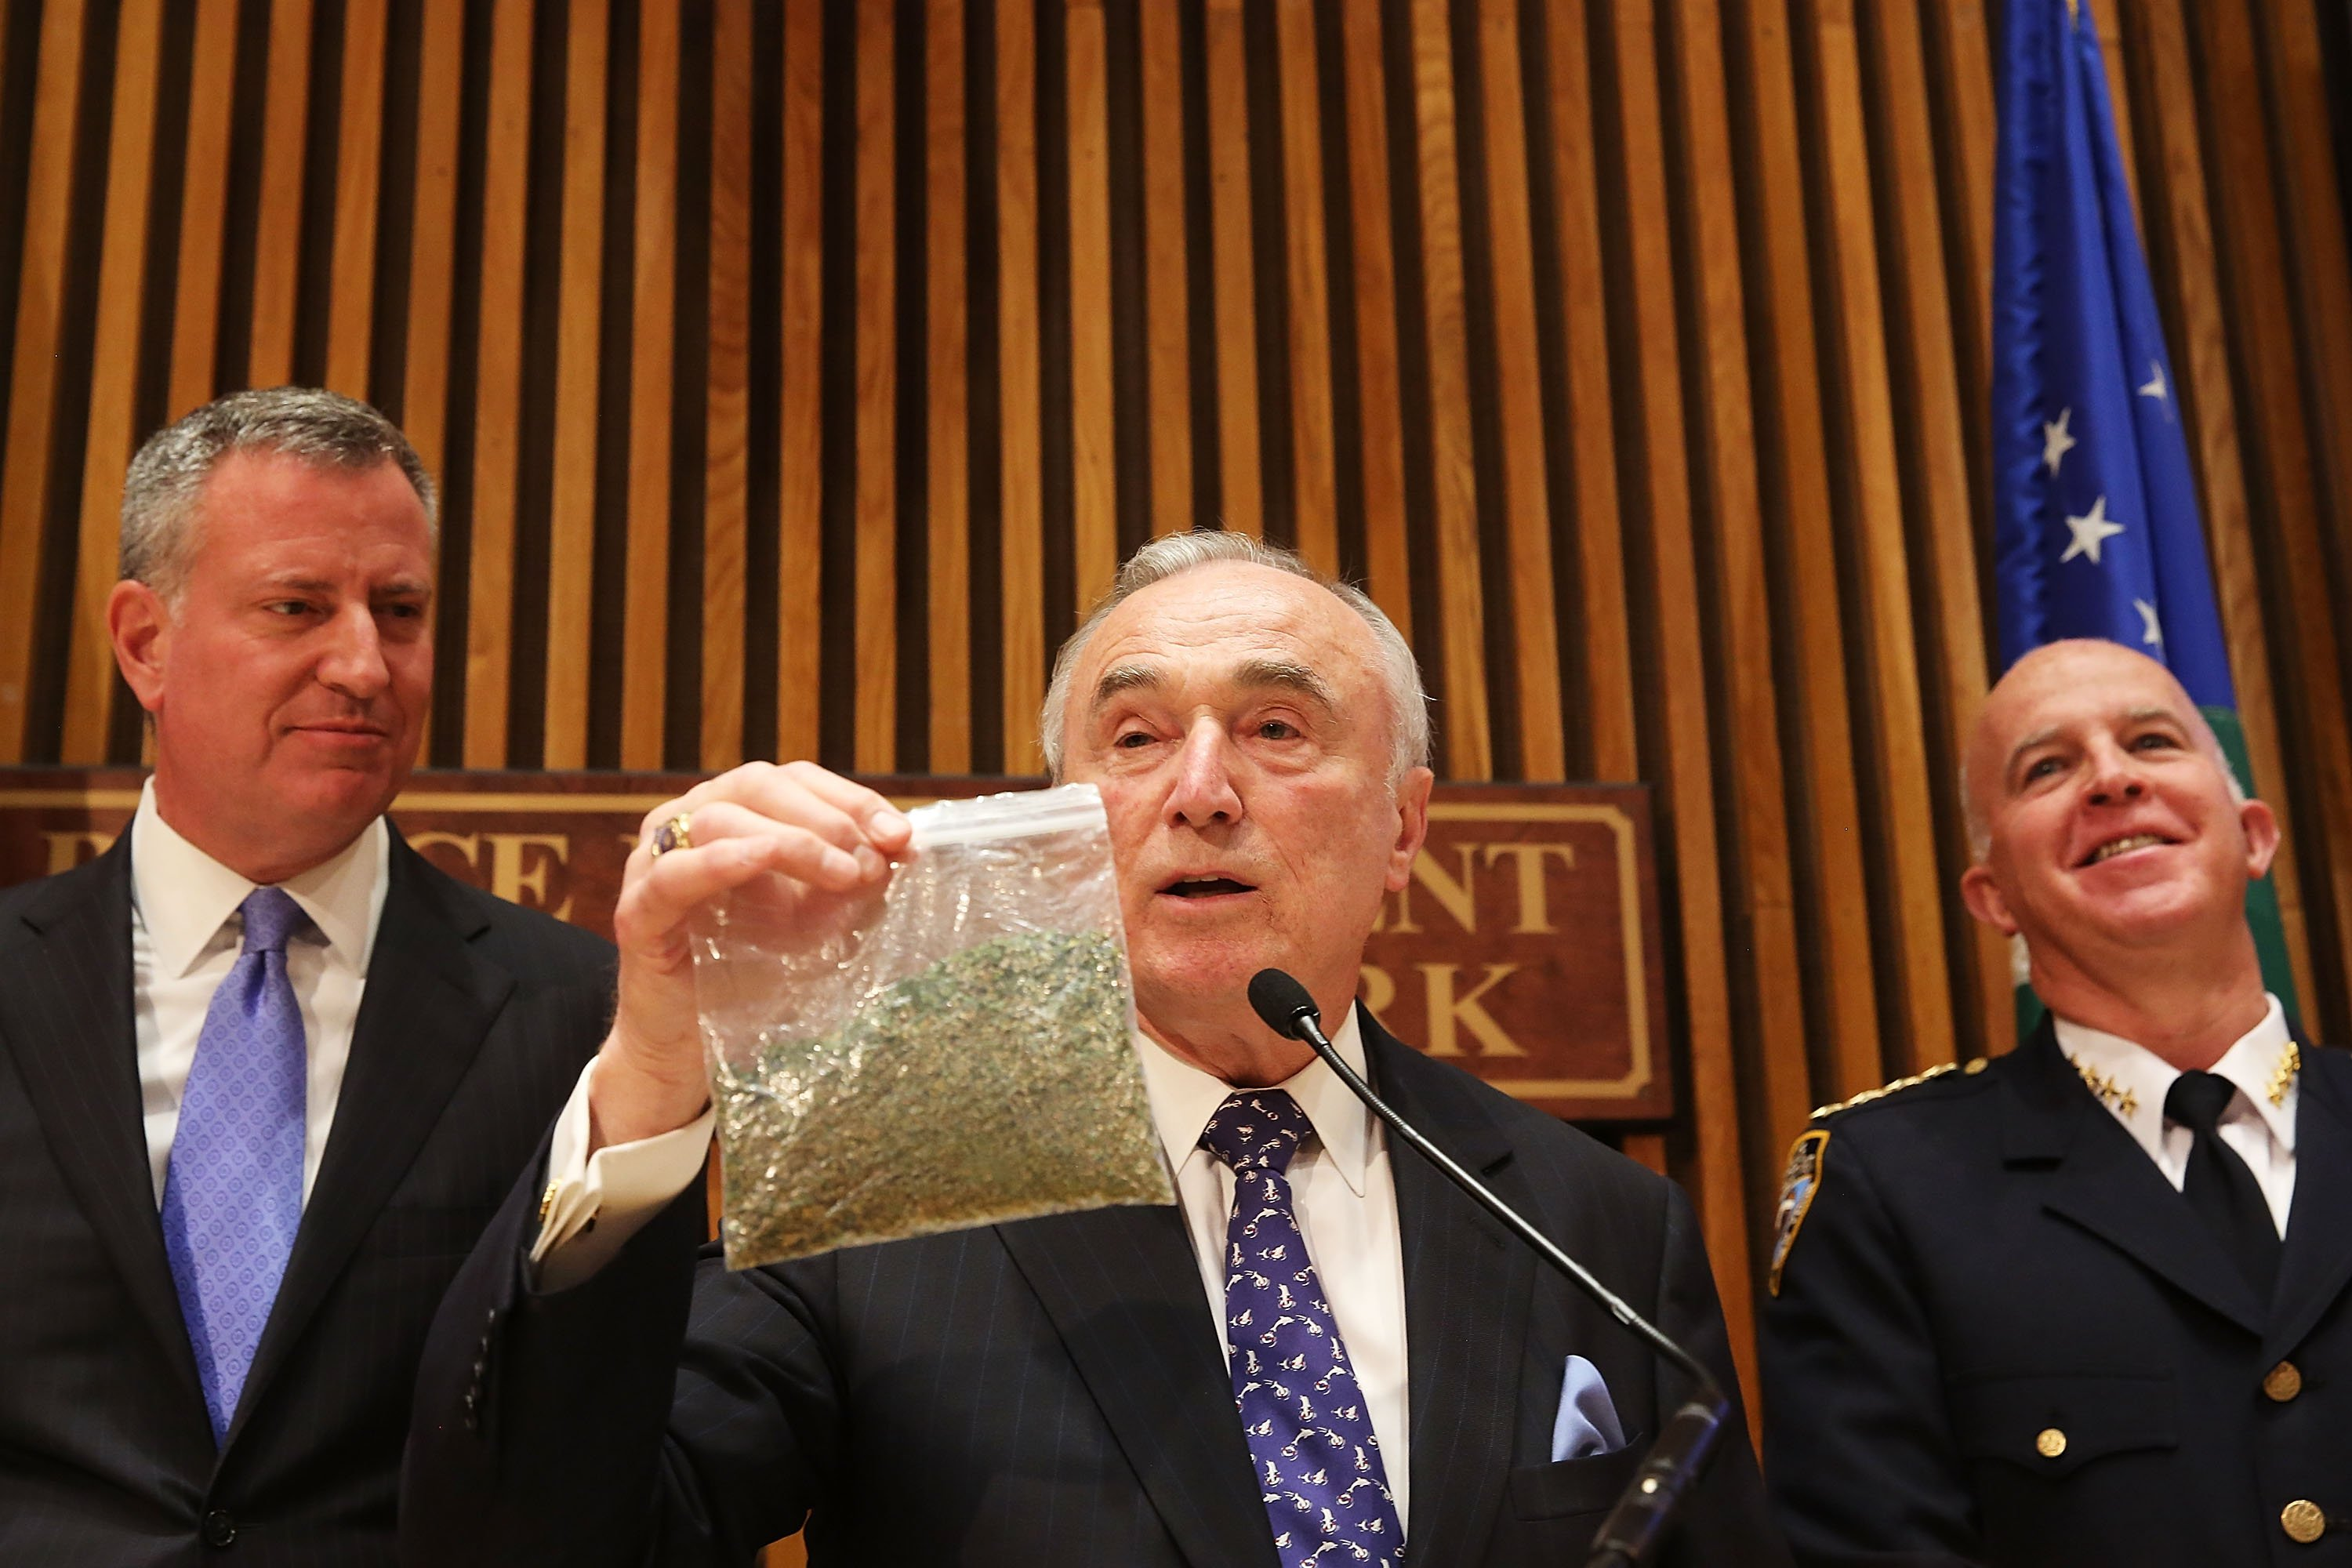 NY Mayor De Blasio And NYPD Commissioner Bratton Announces Changes To Marijuana Policy